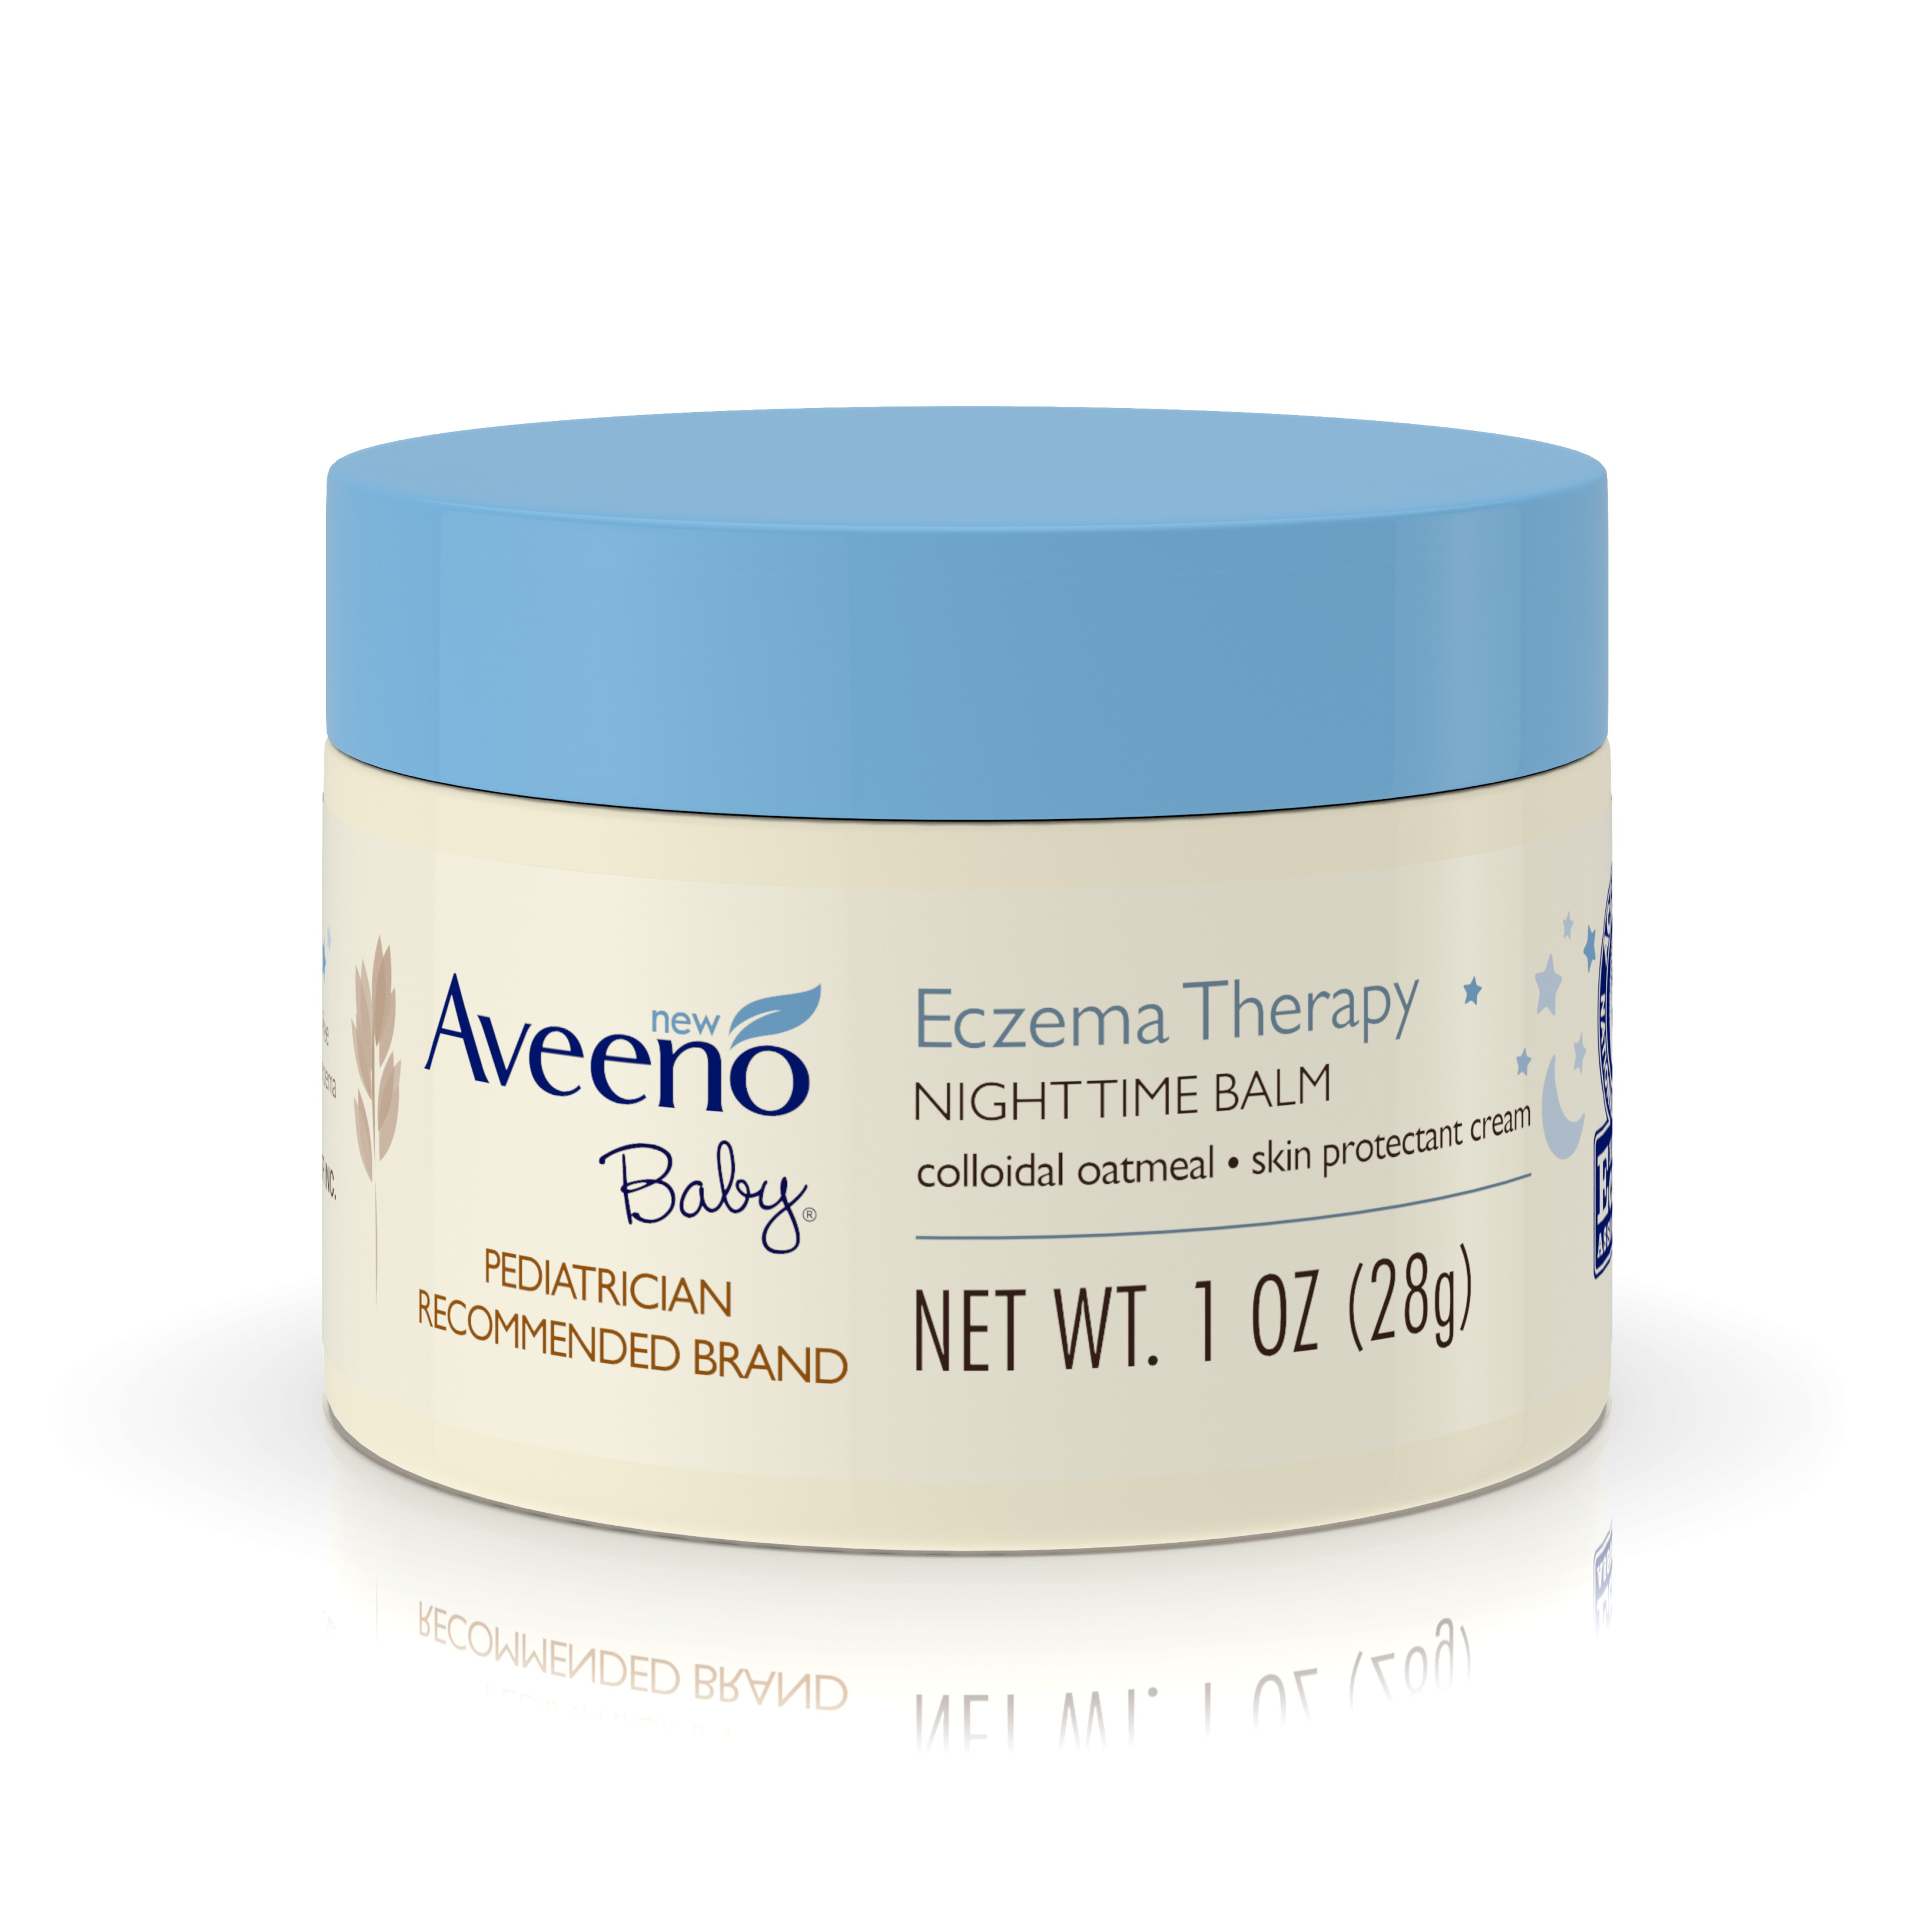 Aveeno Baby Eczema Therapy Nighttime Balm with Natural Oatmeal, 1 oz